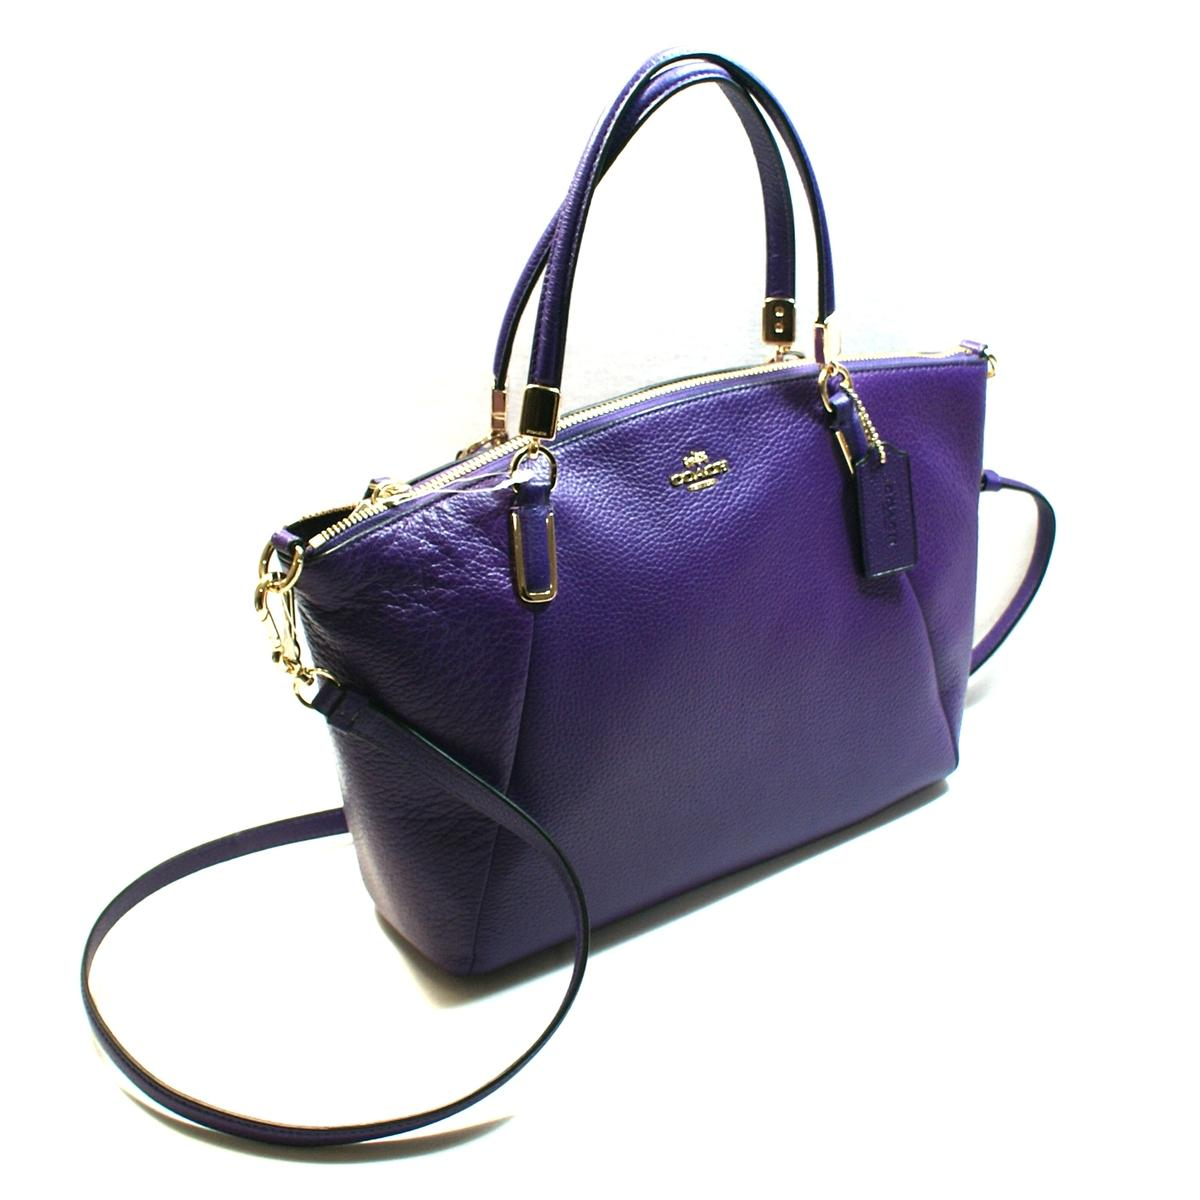 Coach Pebbled Leather Small Kelsey Violet Handbag